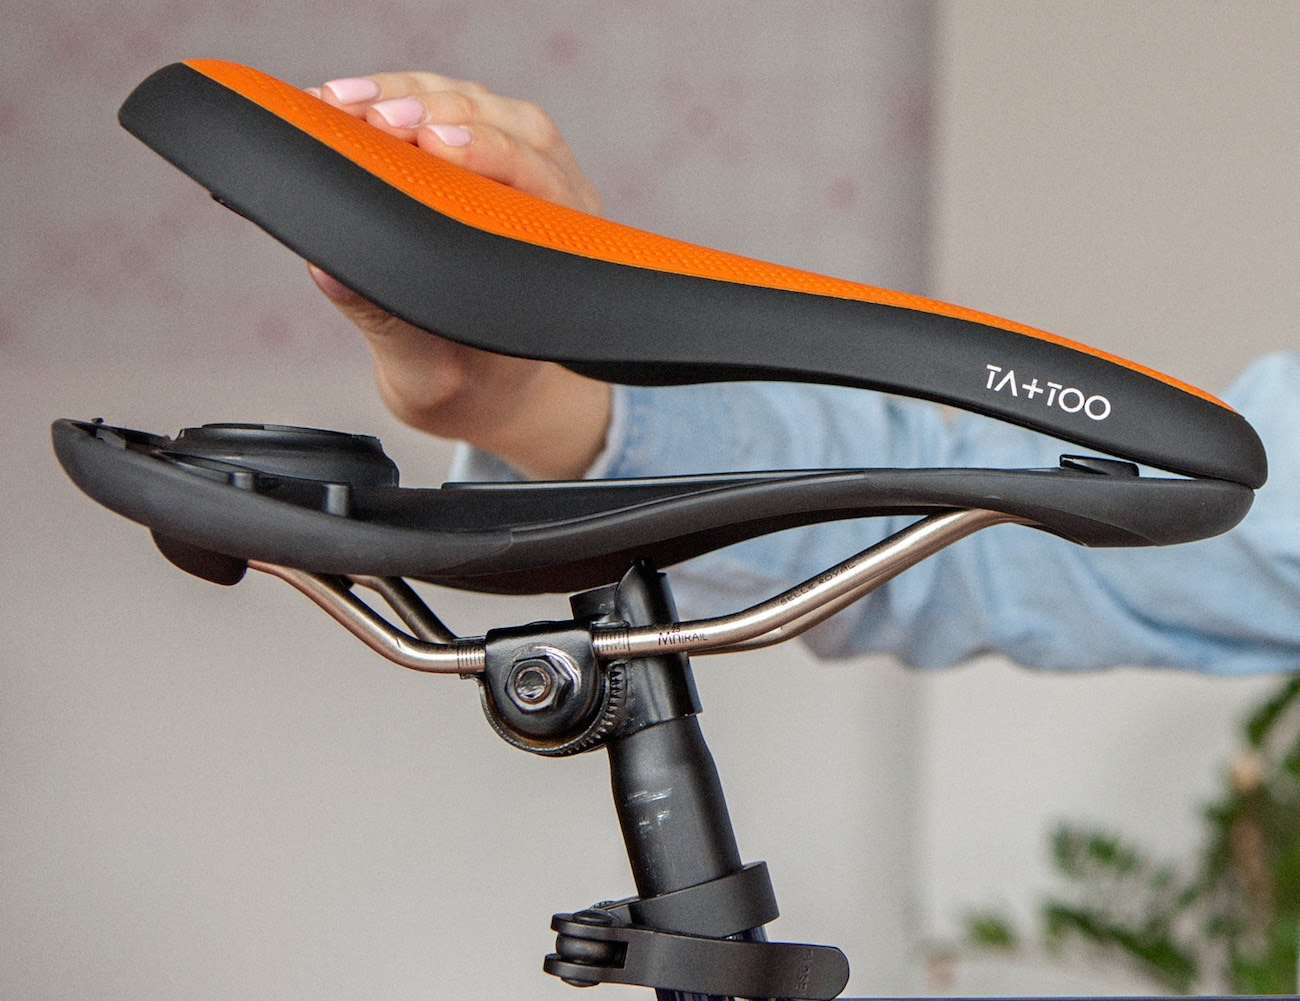 TA+TOO Bicycle Saddle by Selle Royal